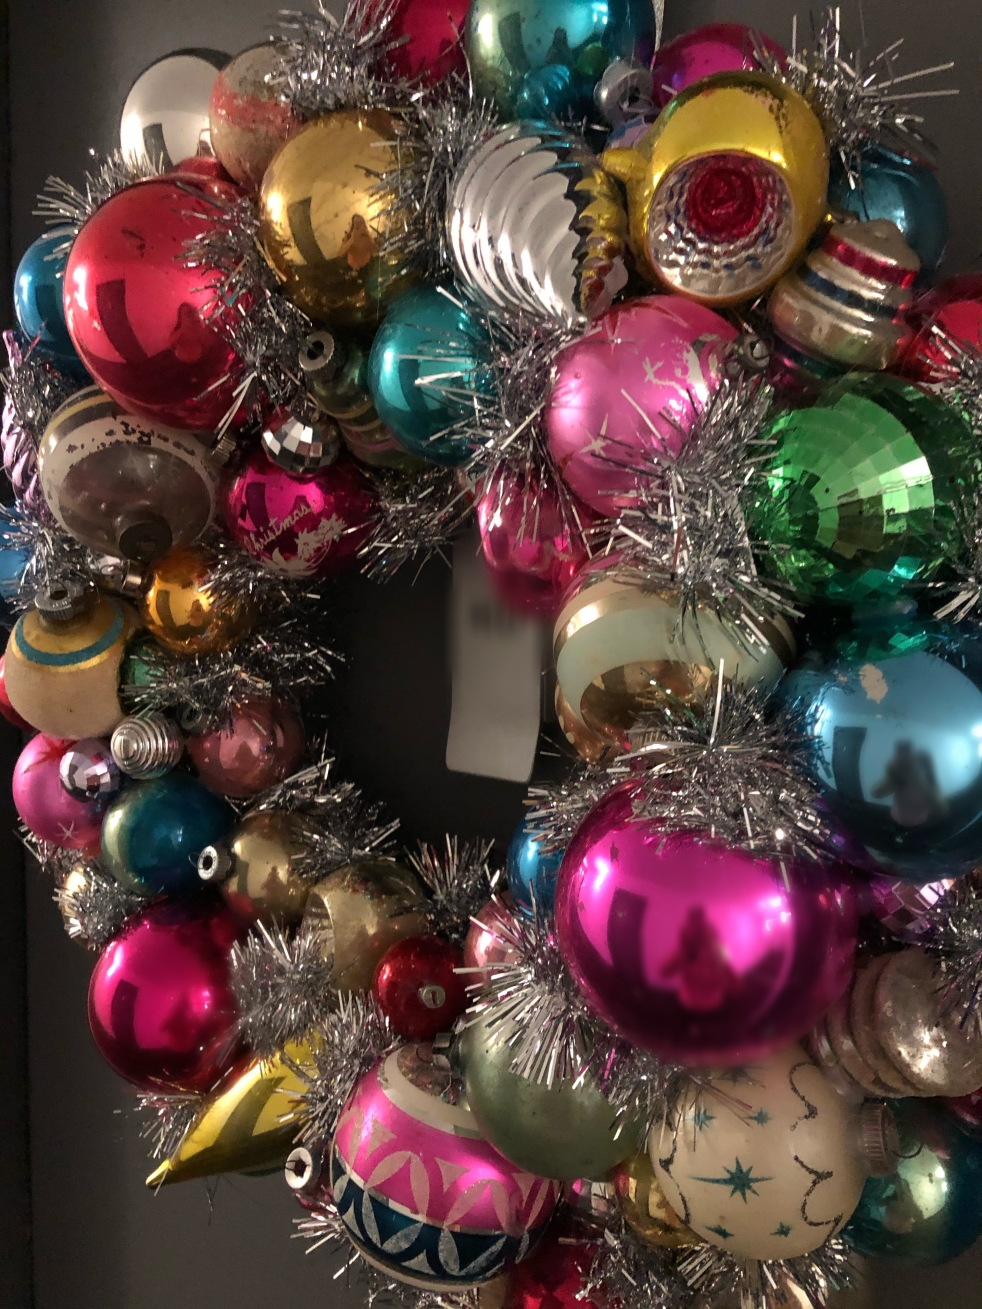 Sarah In Style, Blogger DIY, Christmas Decorations, DIY Wreaths, Vintage Ornament Wreath, Vintage Ornament Wreaths, How to make a wreath, how to find vintage ornaments, Christmas memory holder, How to show Christmas memories, Holiday Craft projects, Christmas Craft Projects, What to do with old ornaments, Craft Blogger, Craft Blogs, Vintage Christmas Ornaments